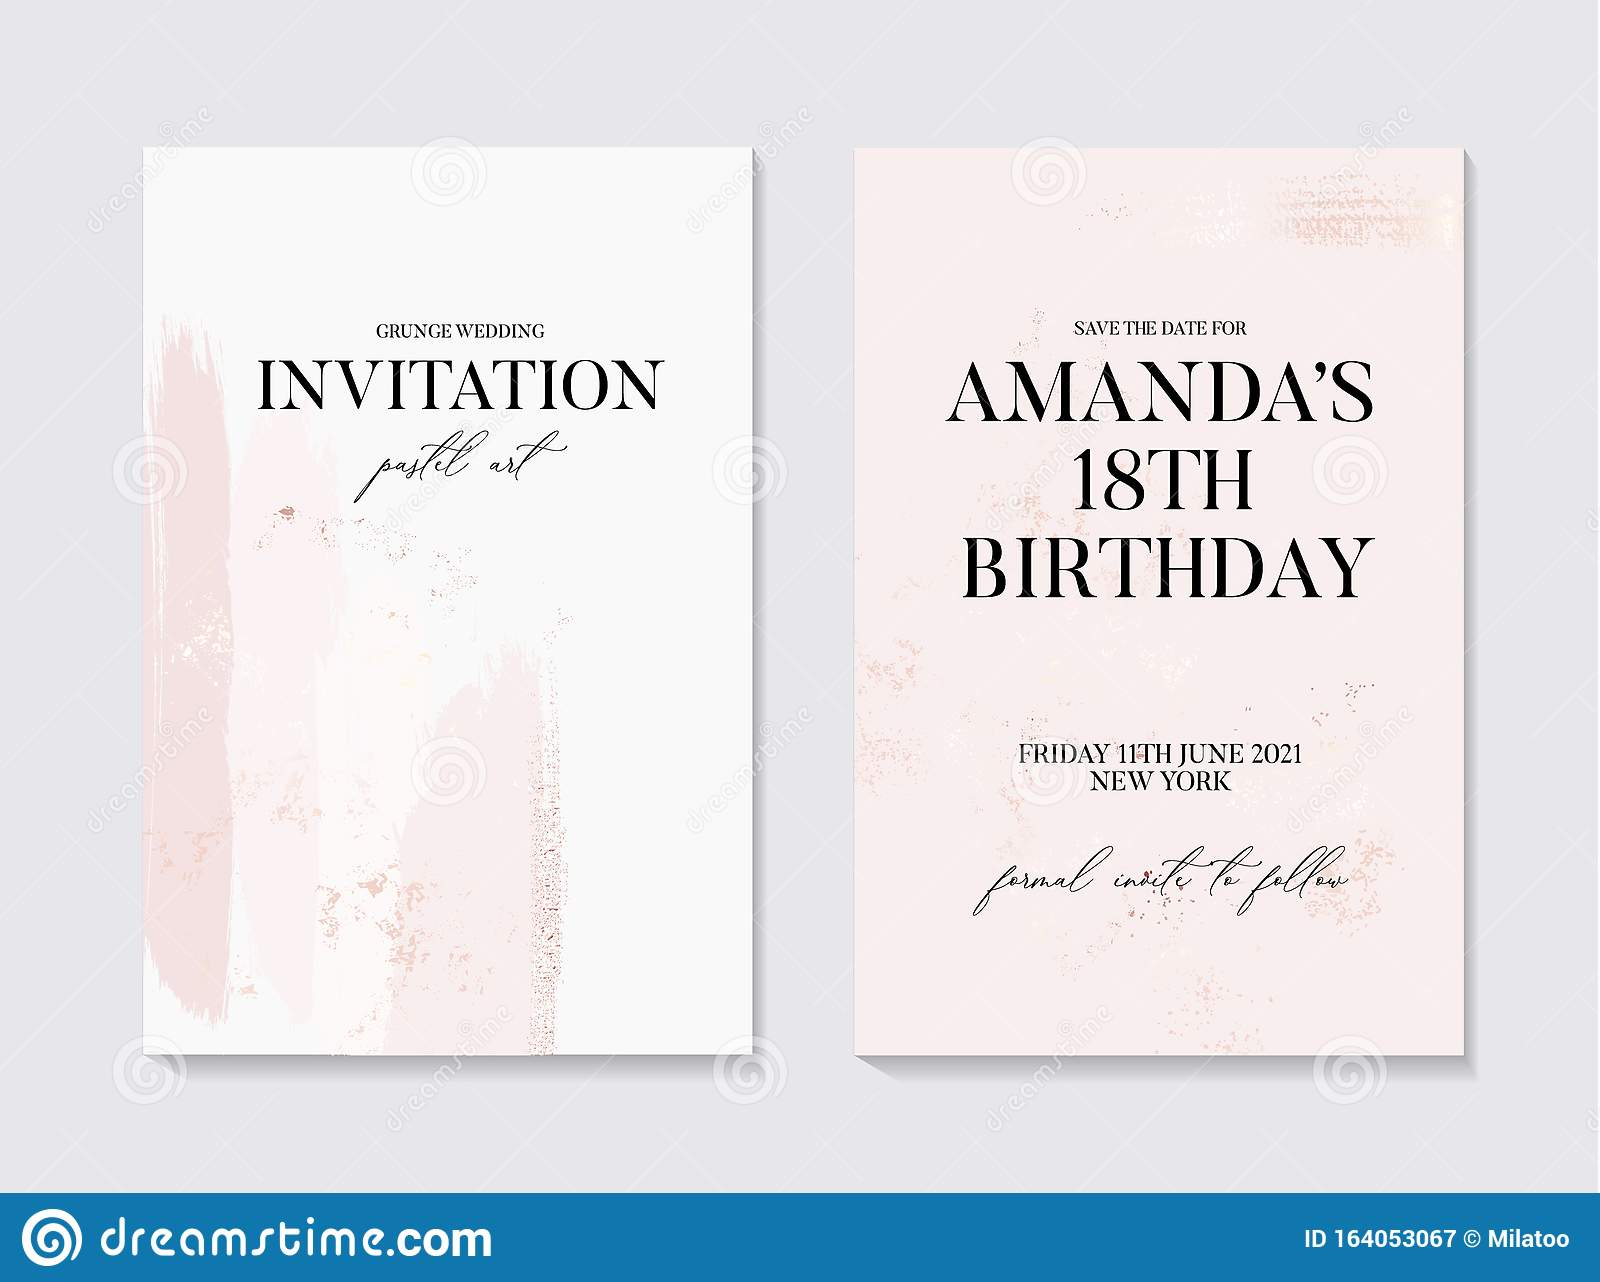 Save the date Rose gold foil save the date Wedding invite,Save the date template Modern invite Texture save the date Instant download